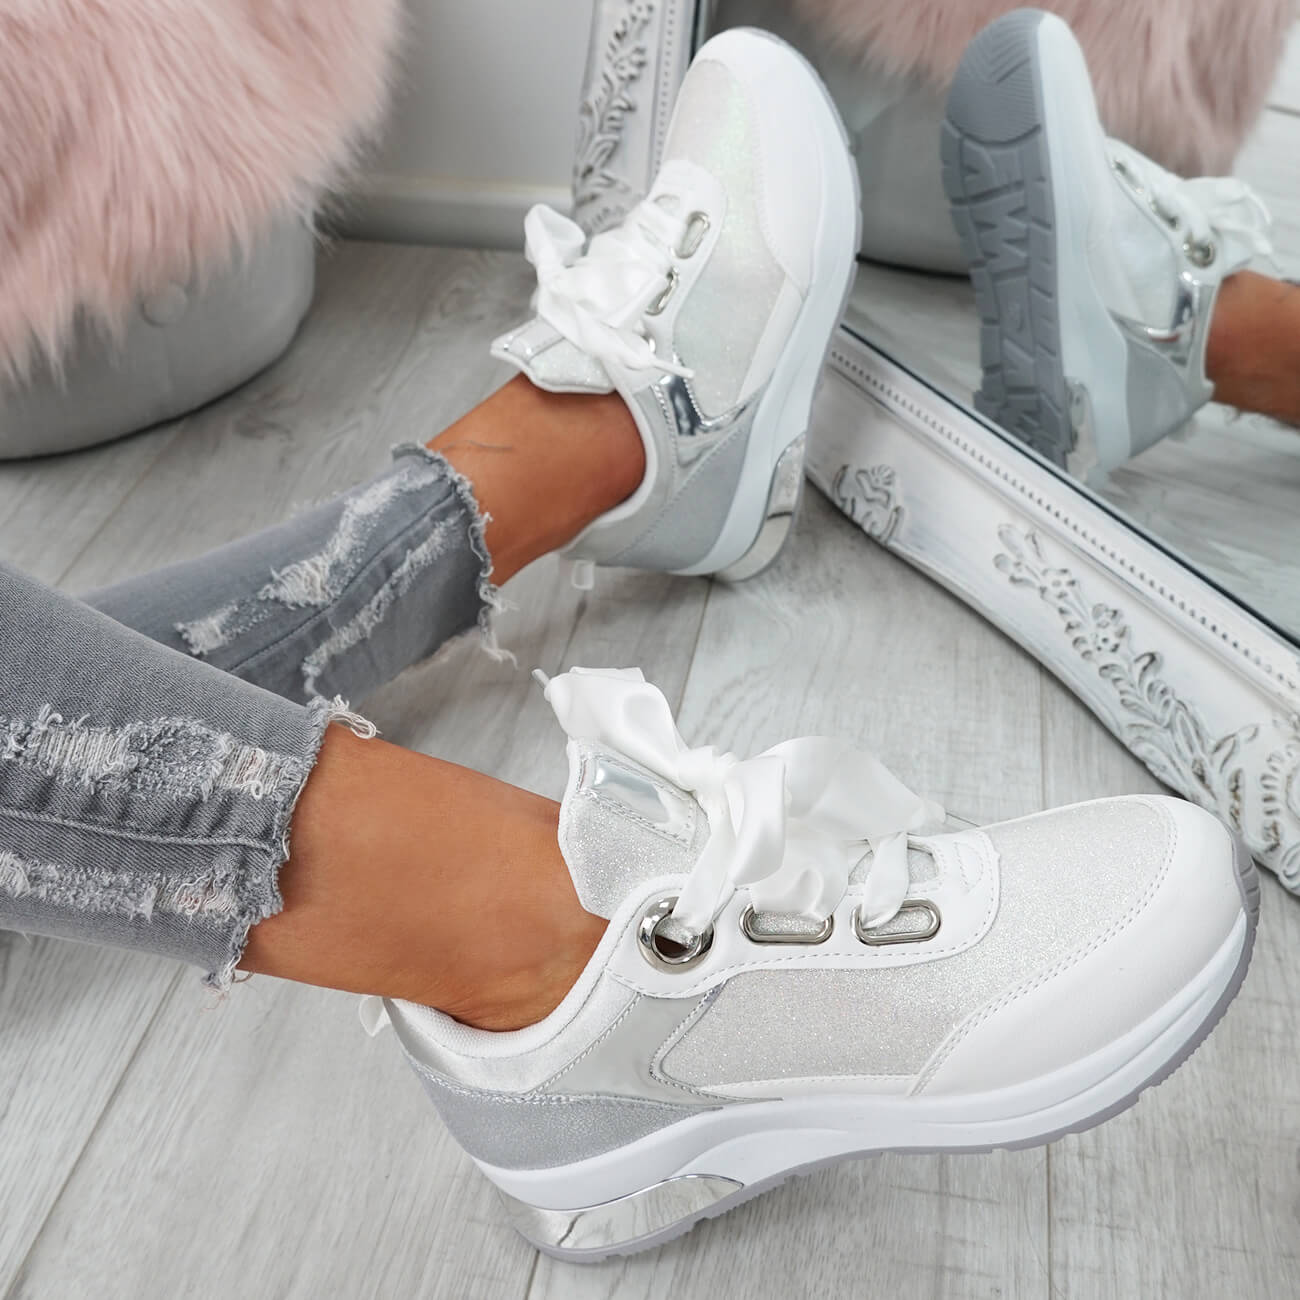 WOMENS-LADIES-RIBBON-TRAINERS-GLITTER-SPARKLE-SNEAKERS-RUNNING-FASHION-SHOES thumbnail 20